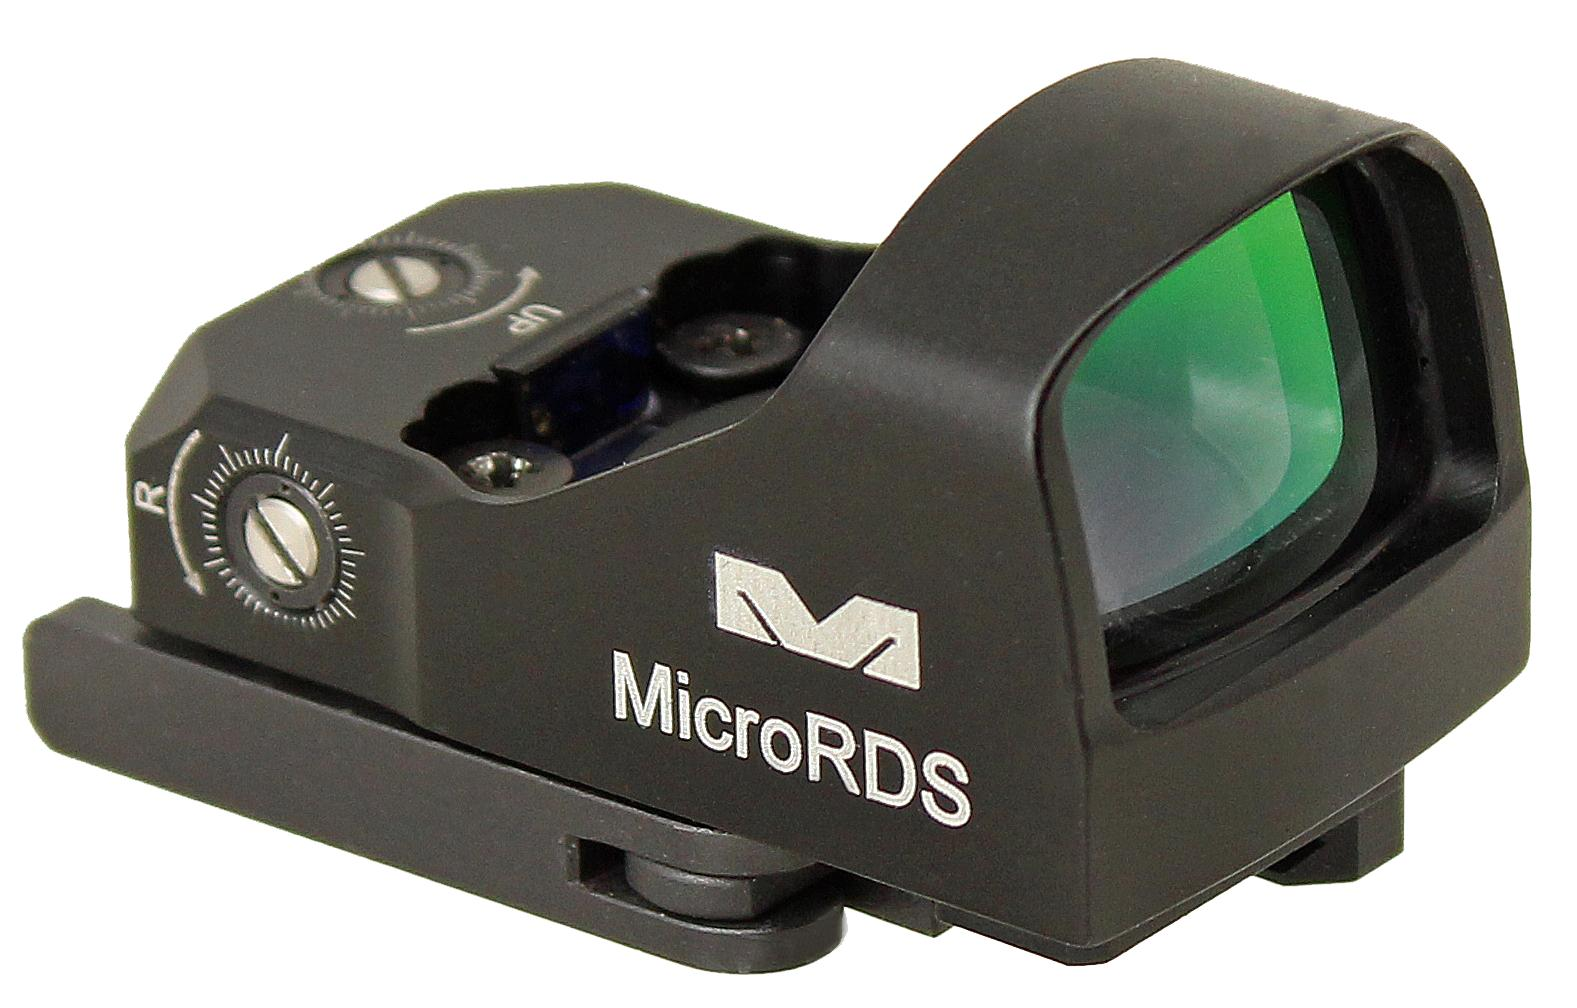 MEPROLIGHT MICRORDS KIT, GLOCK